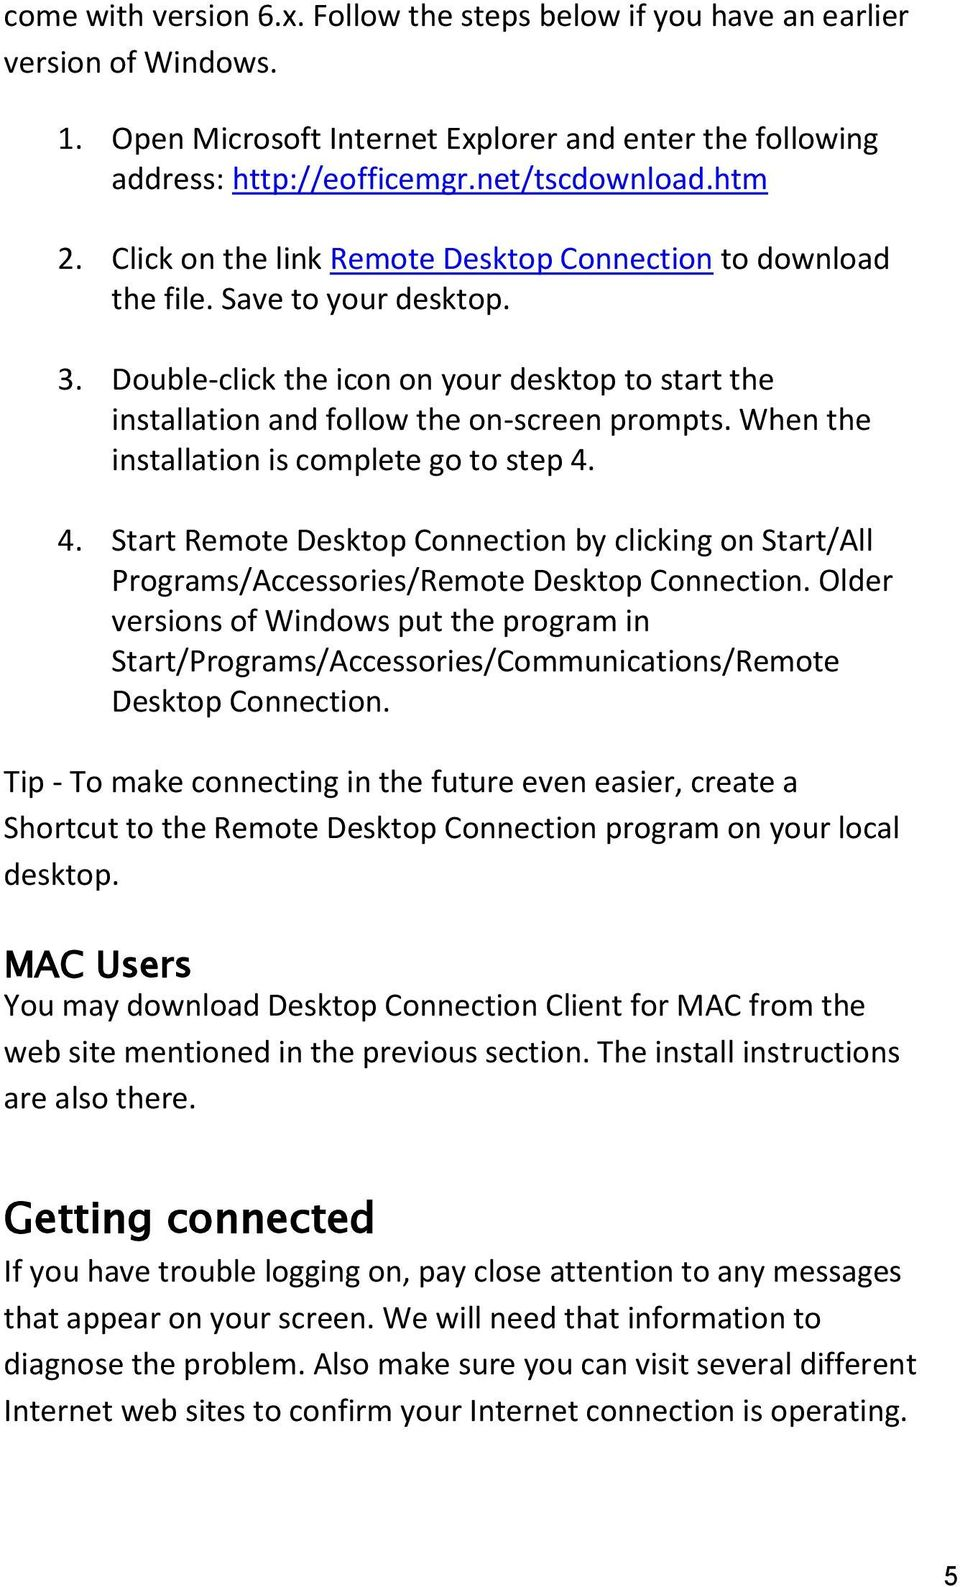 When the installation is complete go to step 4. 4. Start Remote Desktop Connection by clicking on Start/All Programs/Accessories/Remote Desktop Connection.